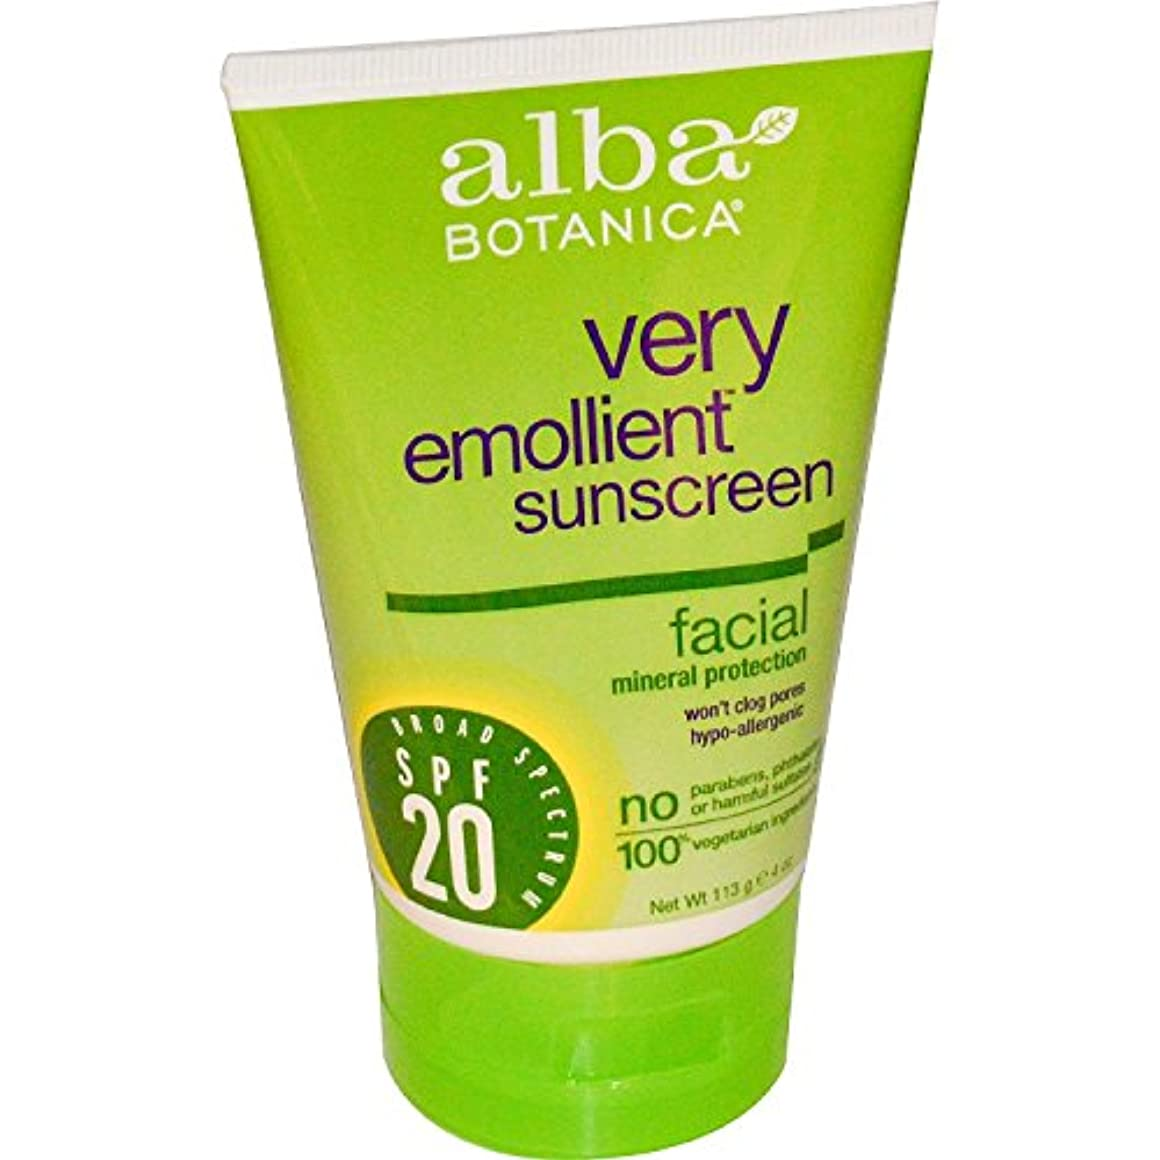 劇場類推カラスNatural Sunblock - Very Emollient - Mineral SPF 20 - Facial - 4 oz by Alba Botanica